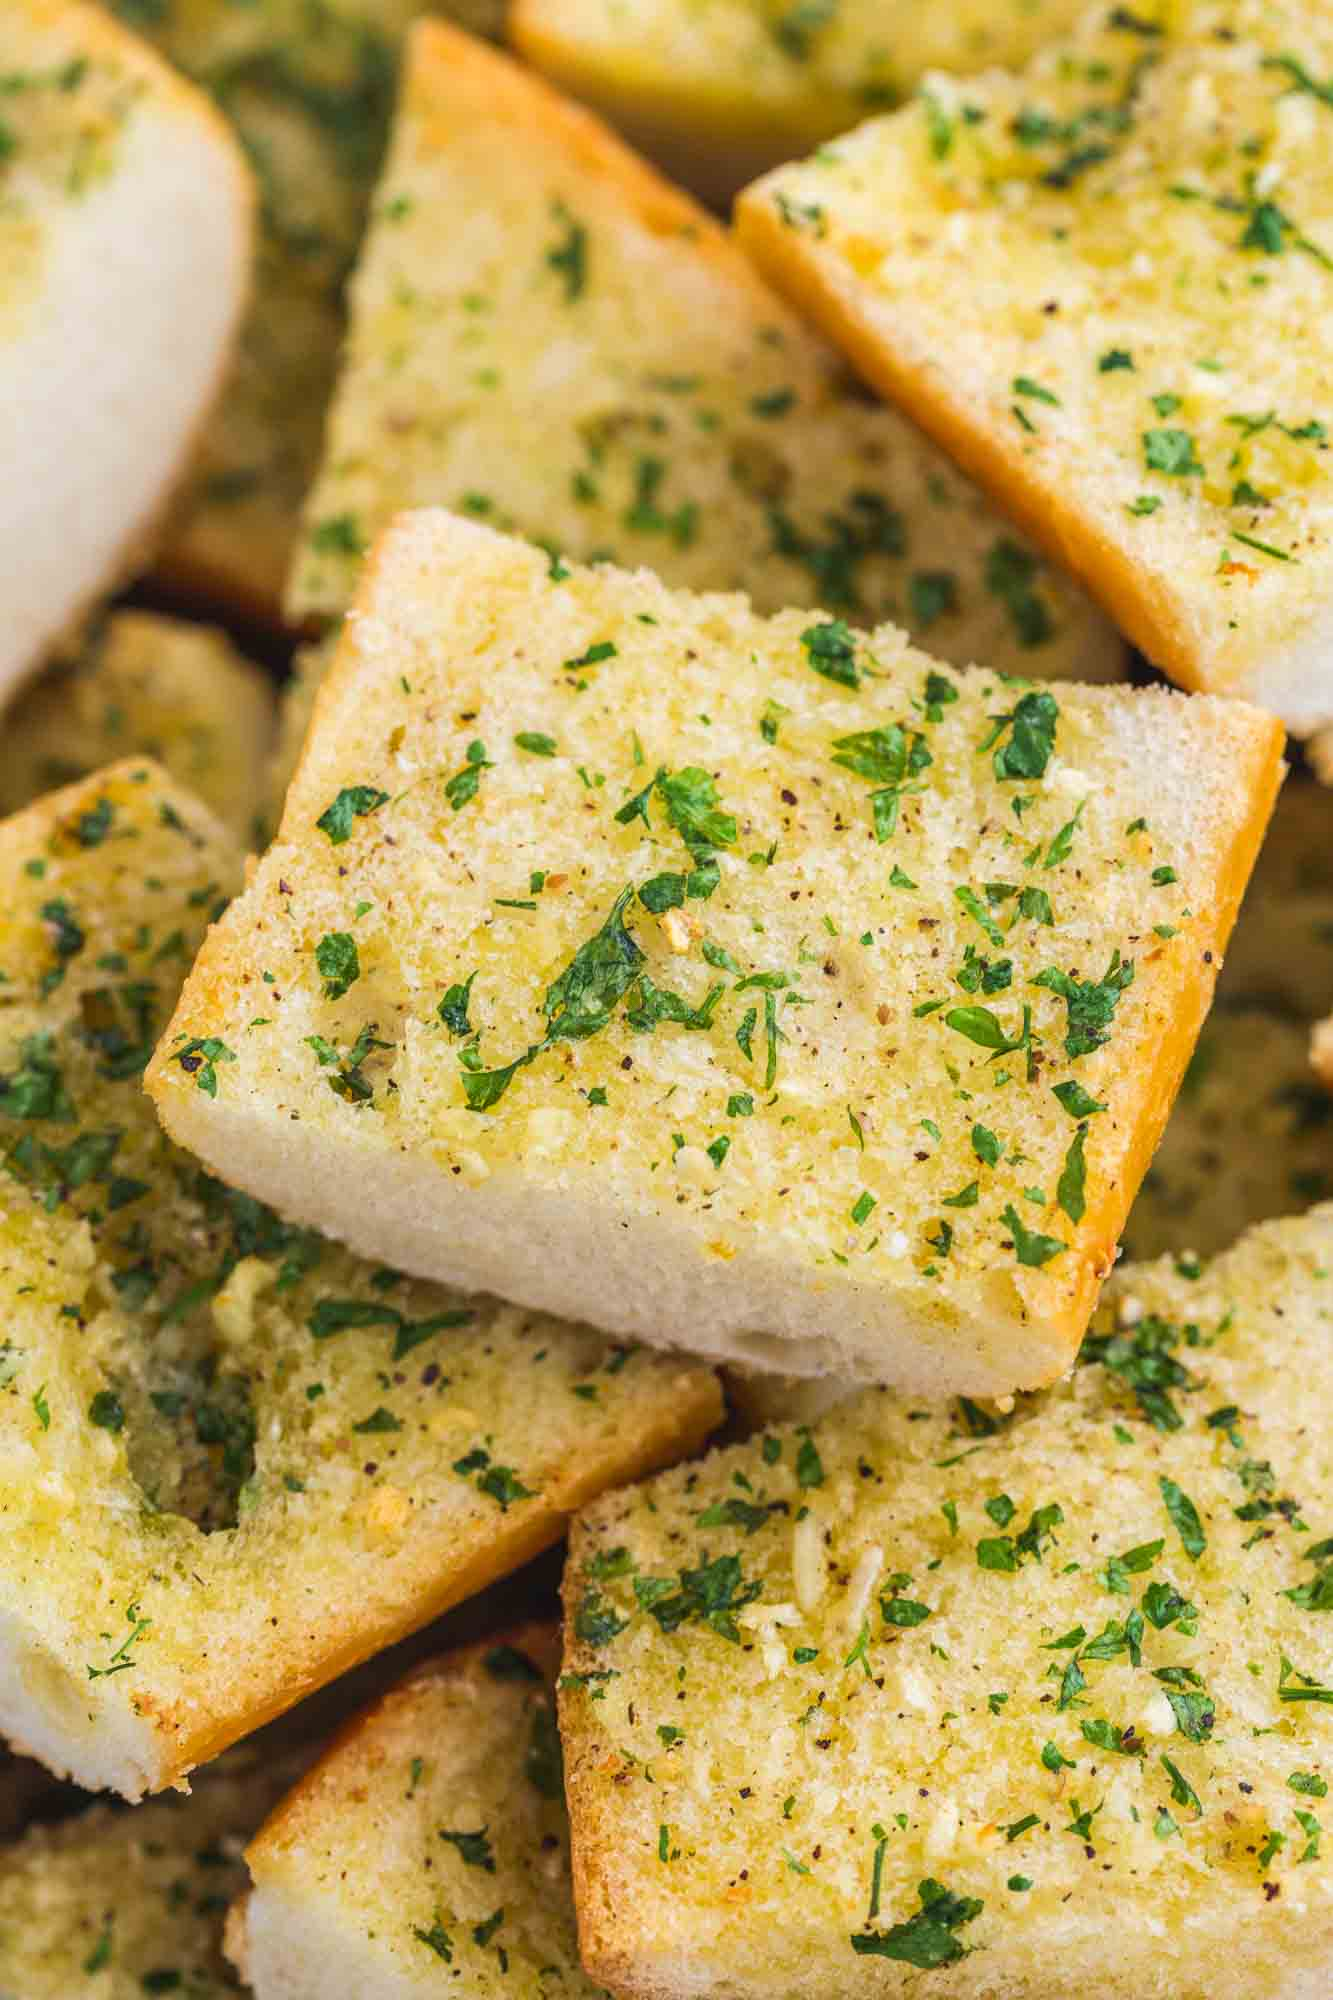 Close up shot of slices of toasted garlic bread